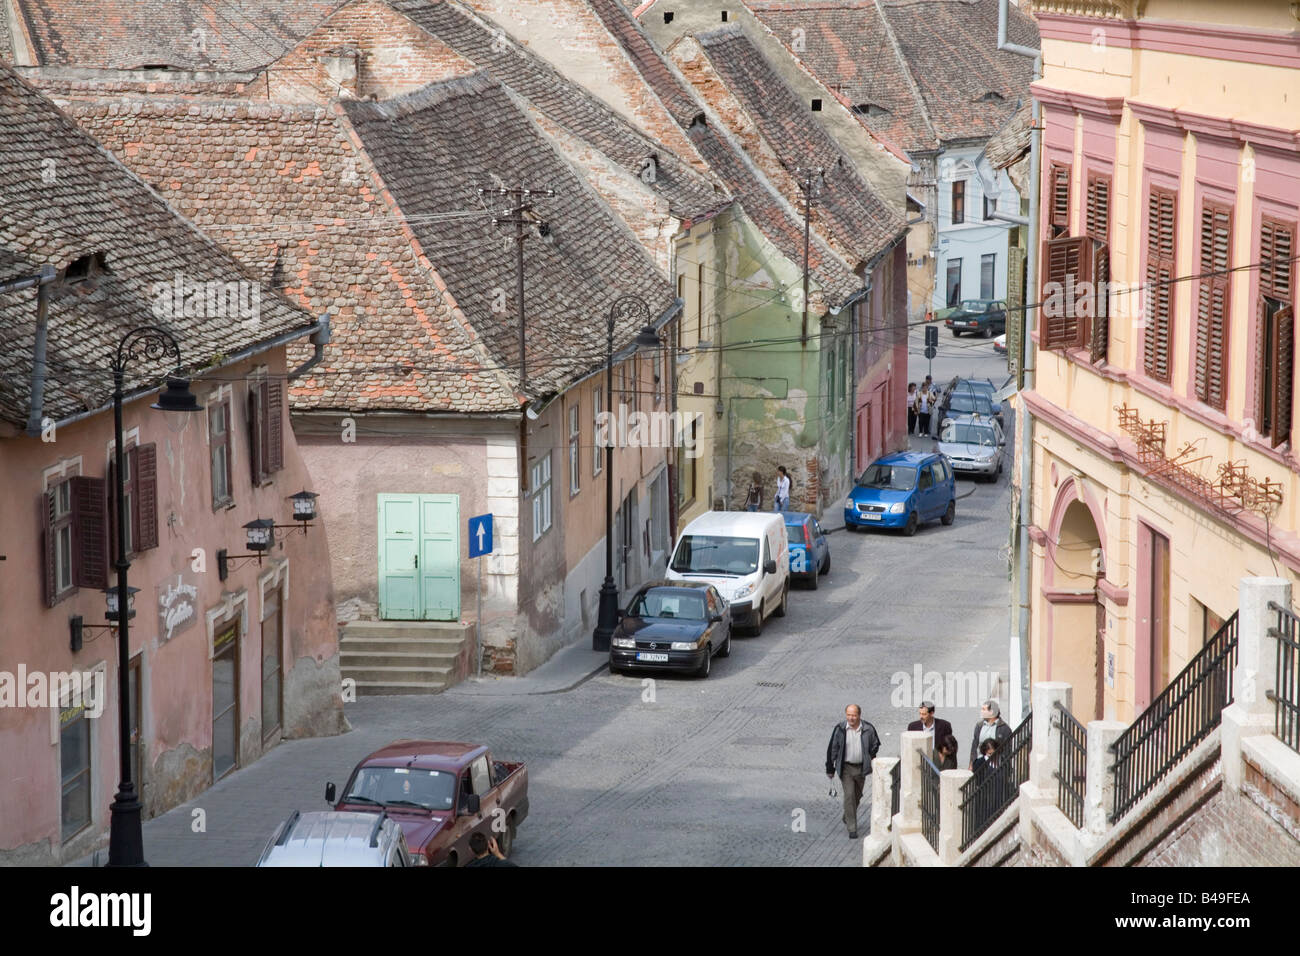 Sibiu Hermannstadt Transylvania Romania Europe September Looking down on one of the narrow streets lined by old Stock Photo